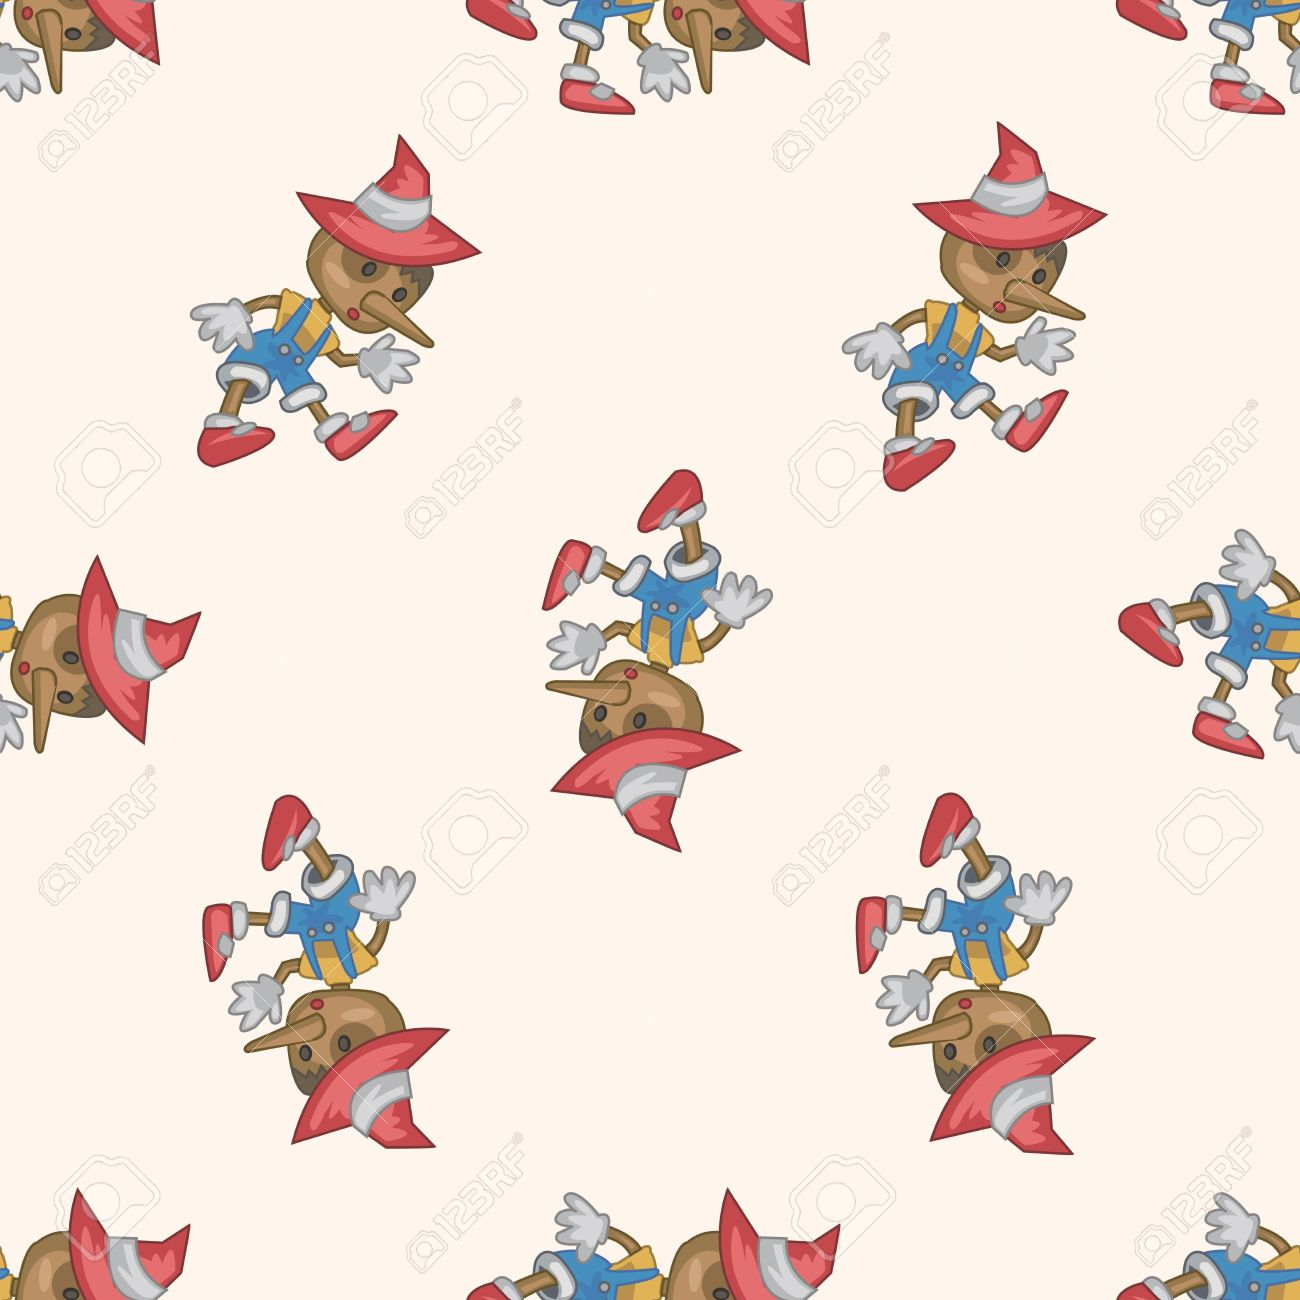 Pinocchio Cartoon Seamless Pattern Background Royalty Free